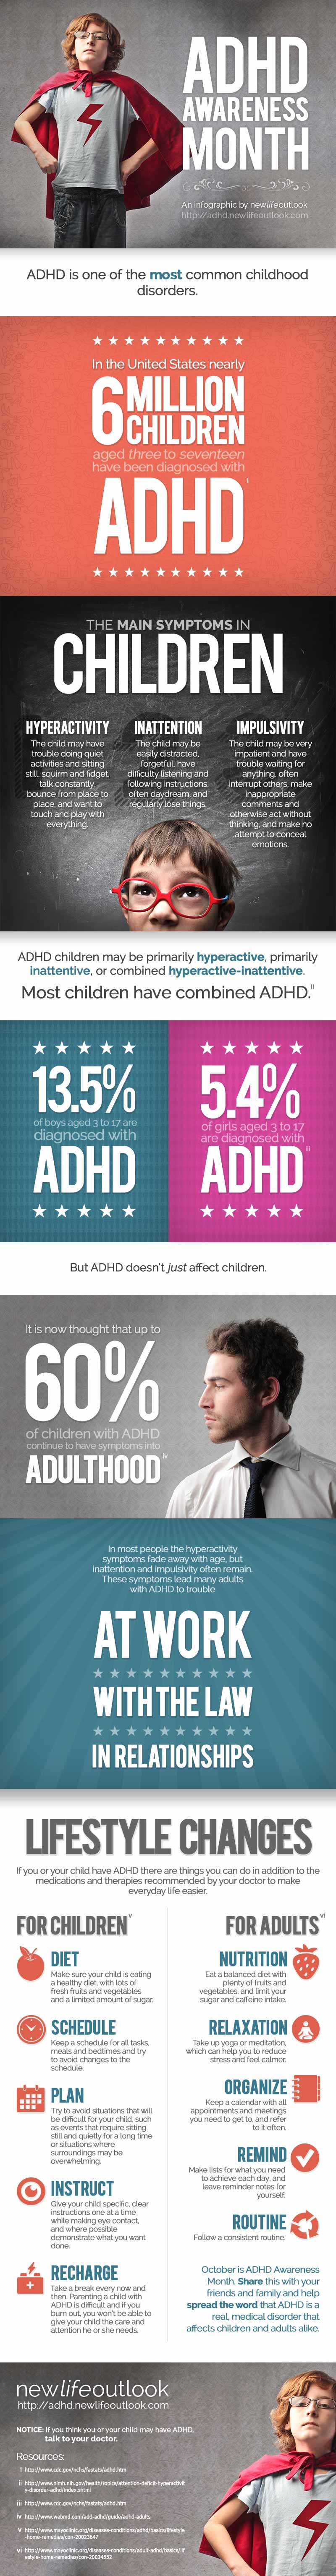 Recognizing ADHD Symptoms in Children and Adults